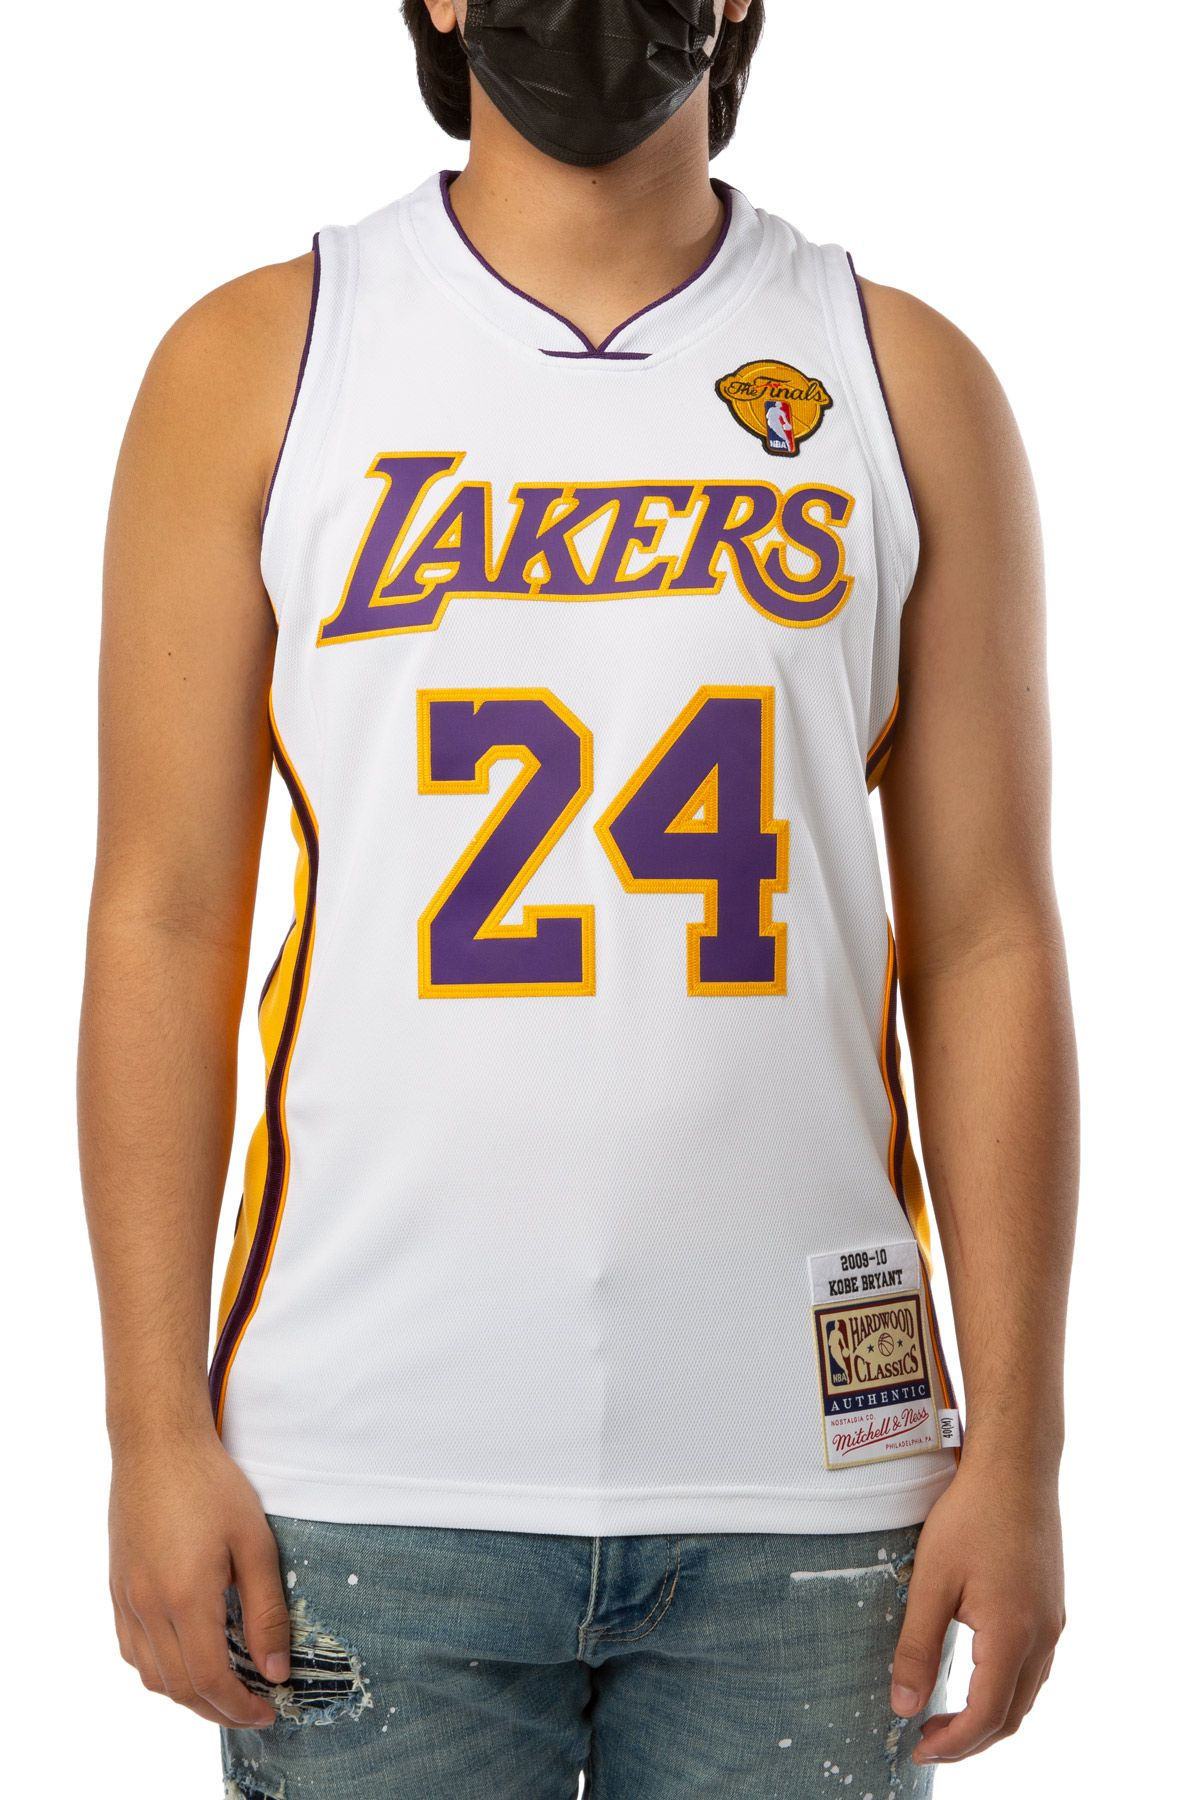 LOS ANGELES LAKERS KOBE BRYANT 2009-10 AUTHENTIC JERSEY